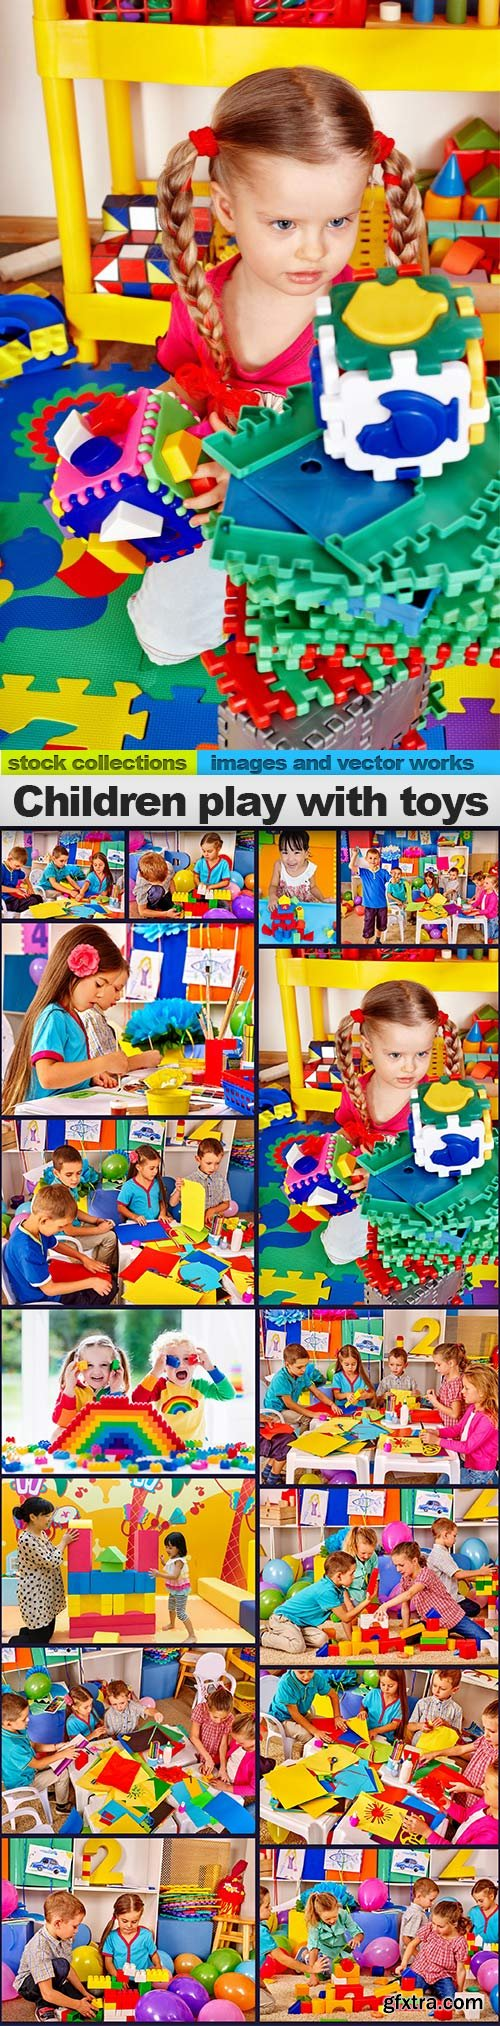 Children play with toys, 15 x UHQ JPEG